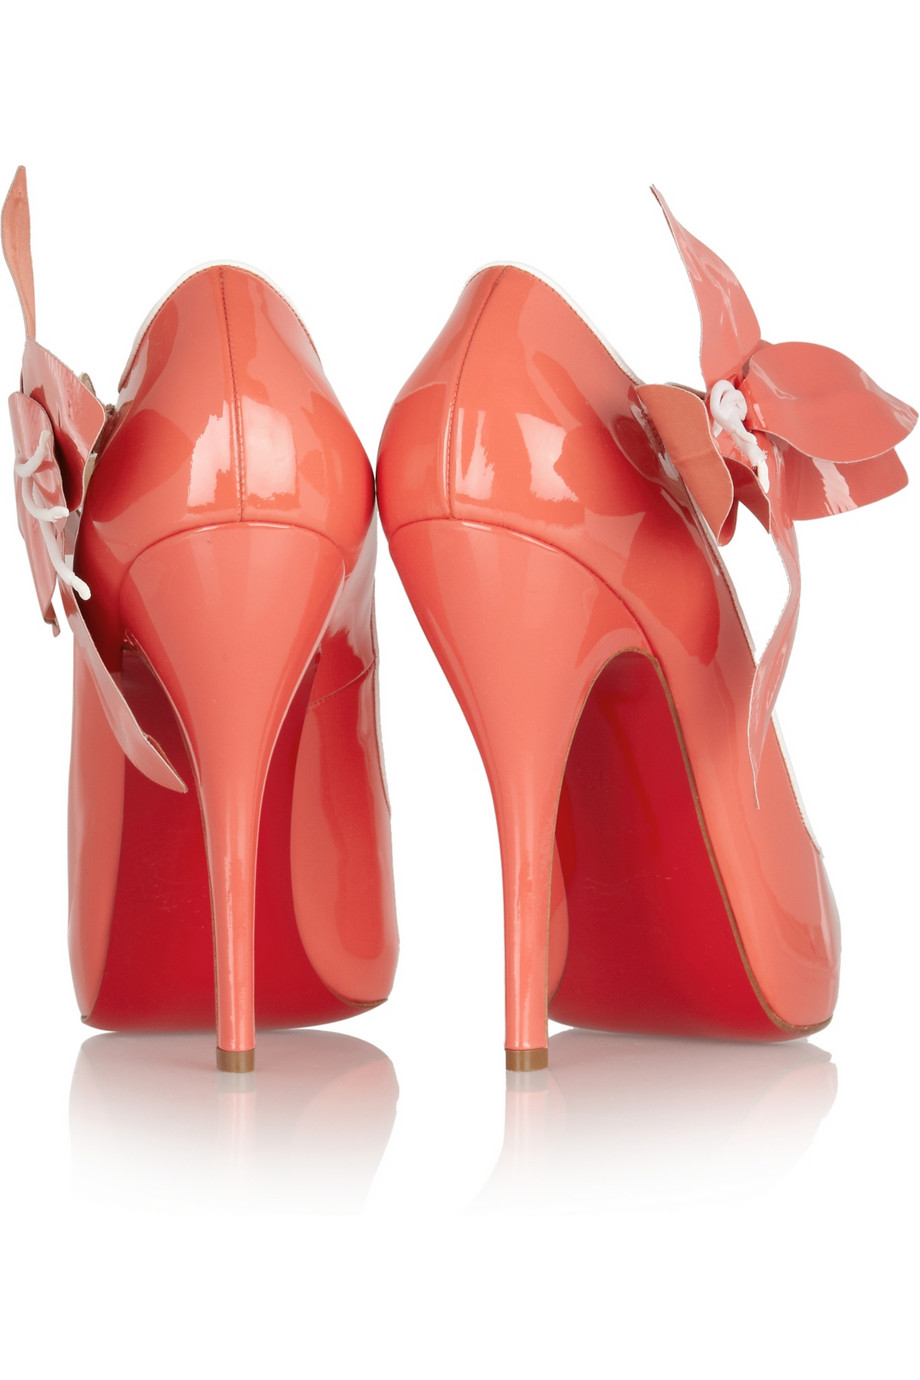 0770017db12f Christian Louboutin Tahiti 120 Patentleather Pumps in Pink - Lyst